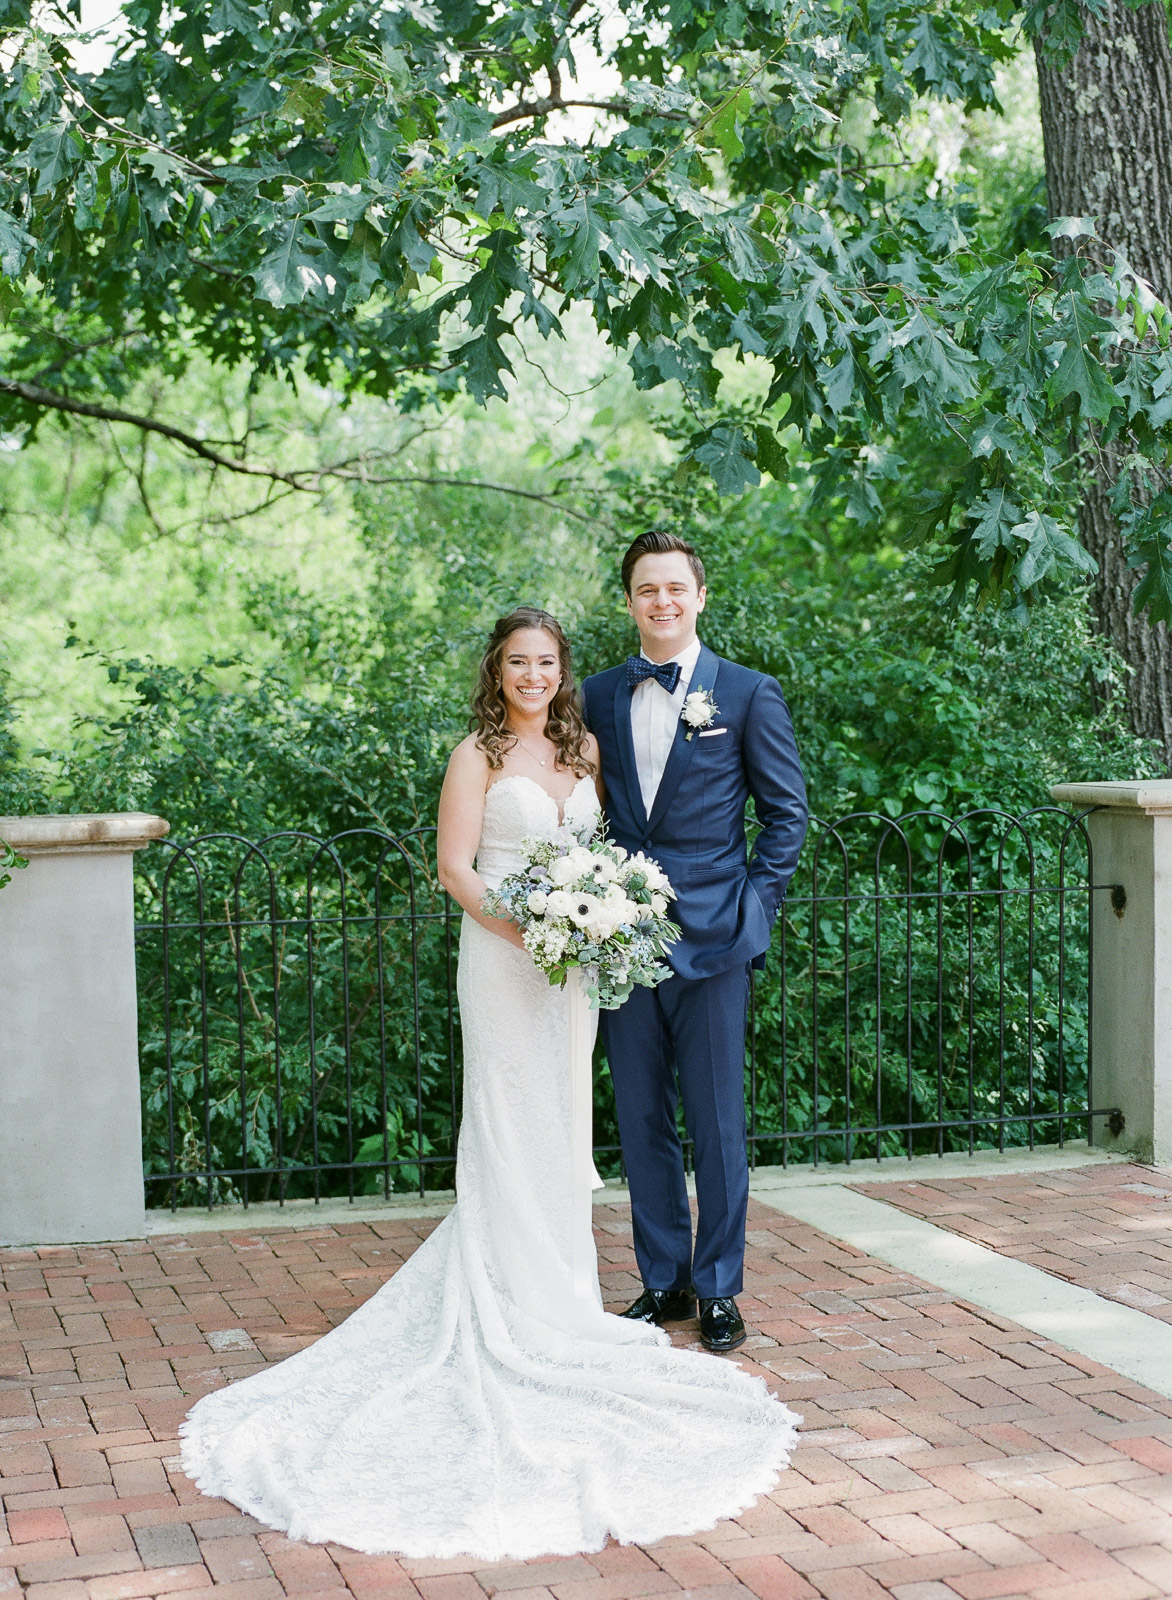 Hotel du Village wedding in New Hope PA